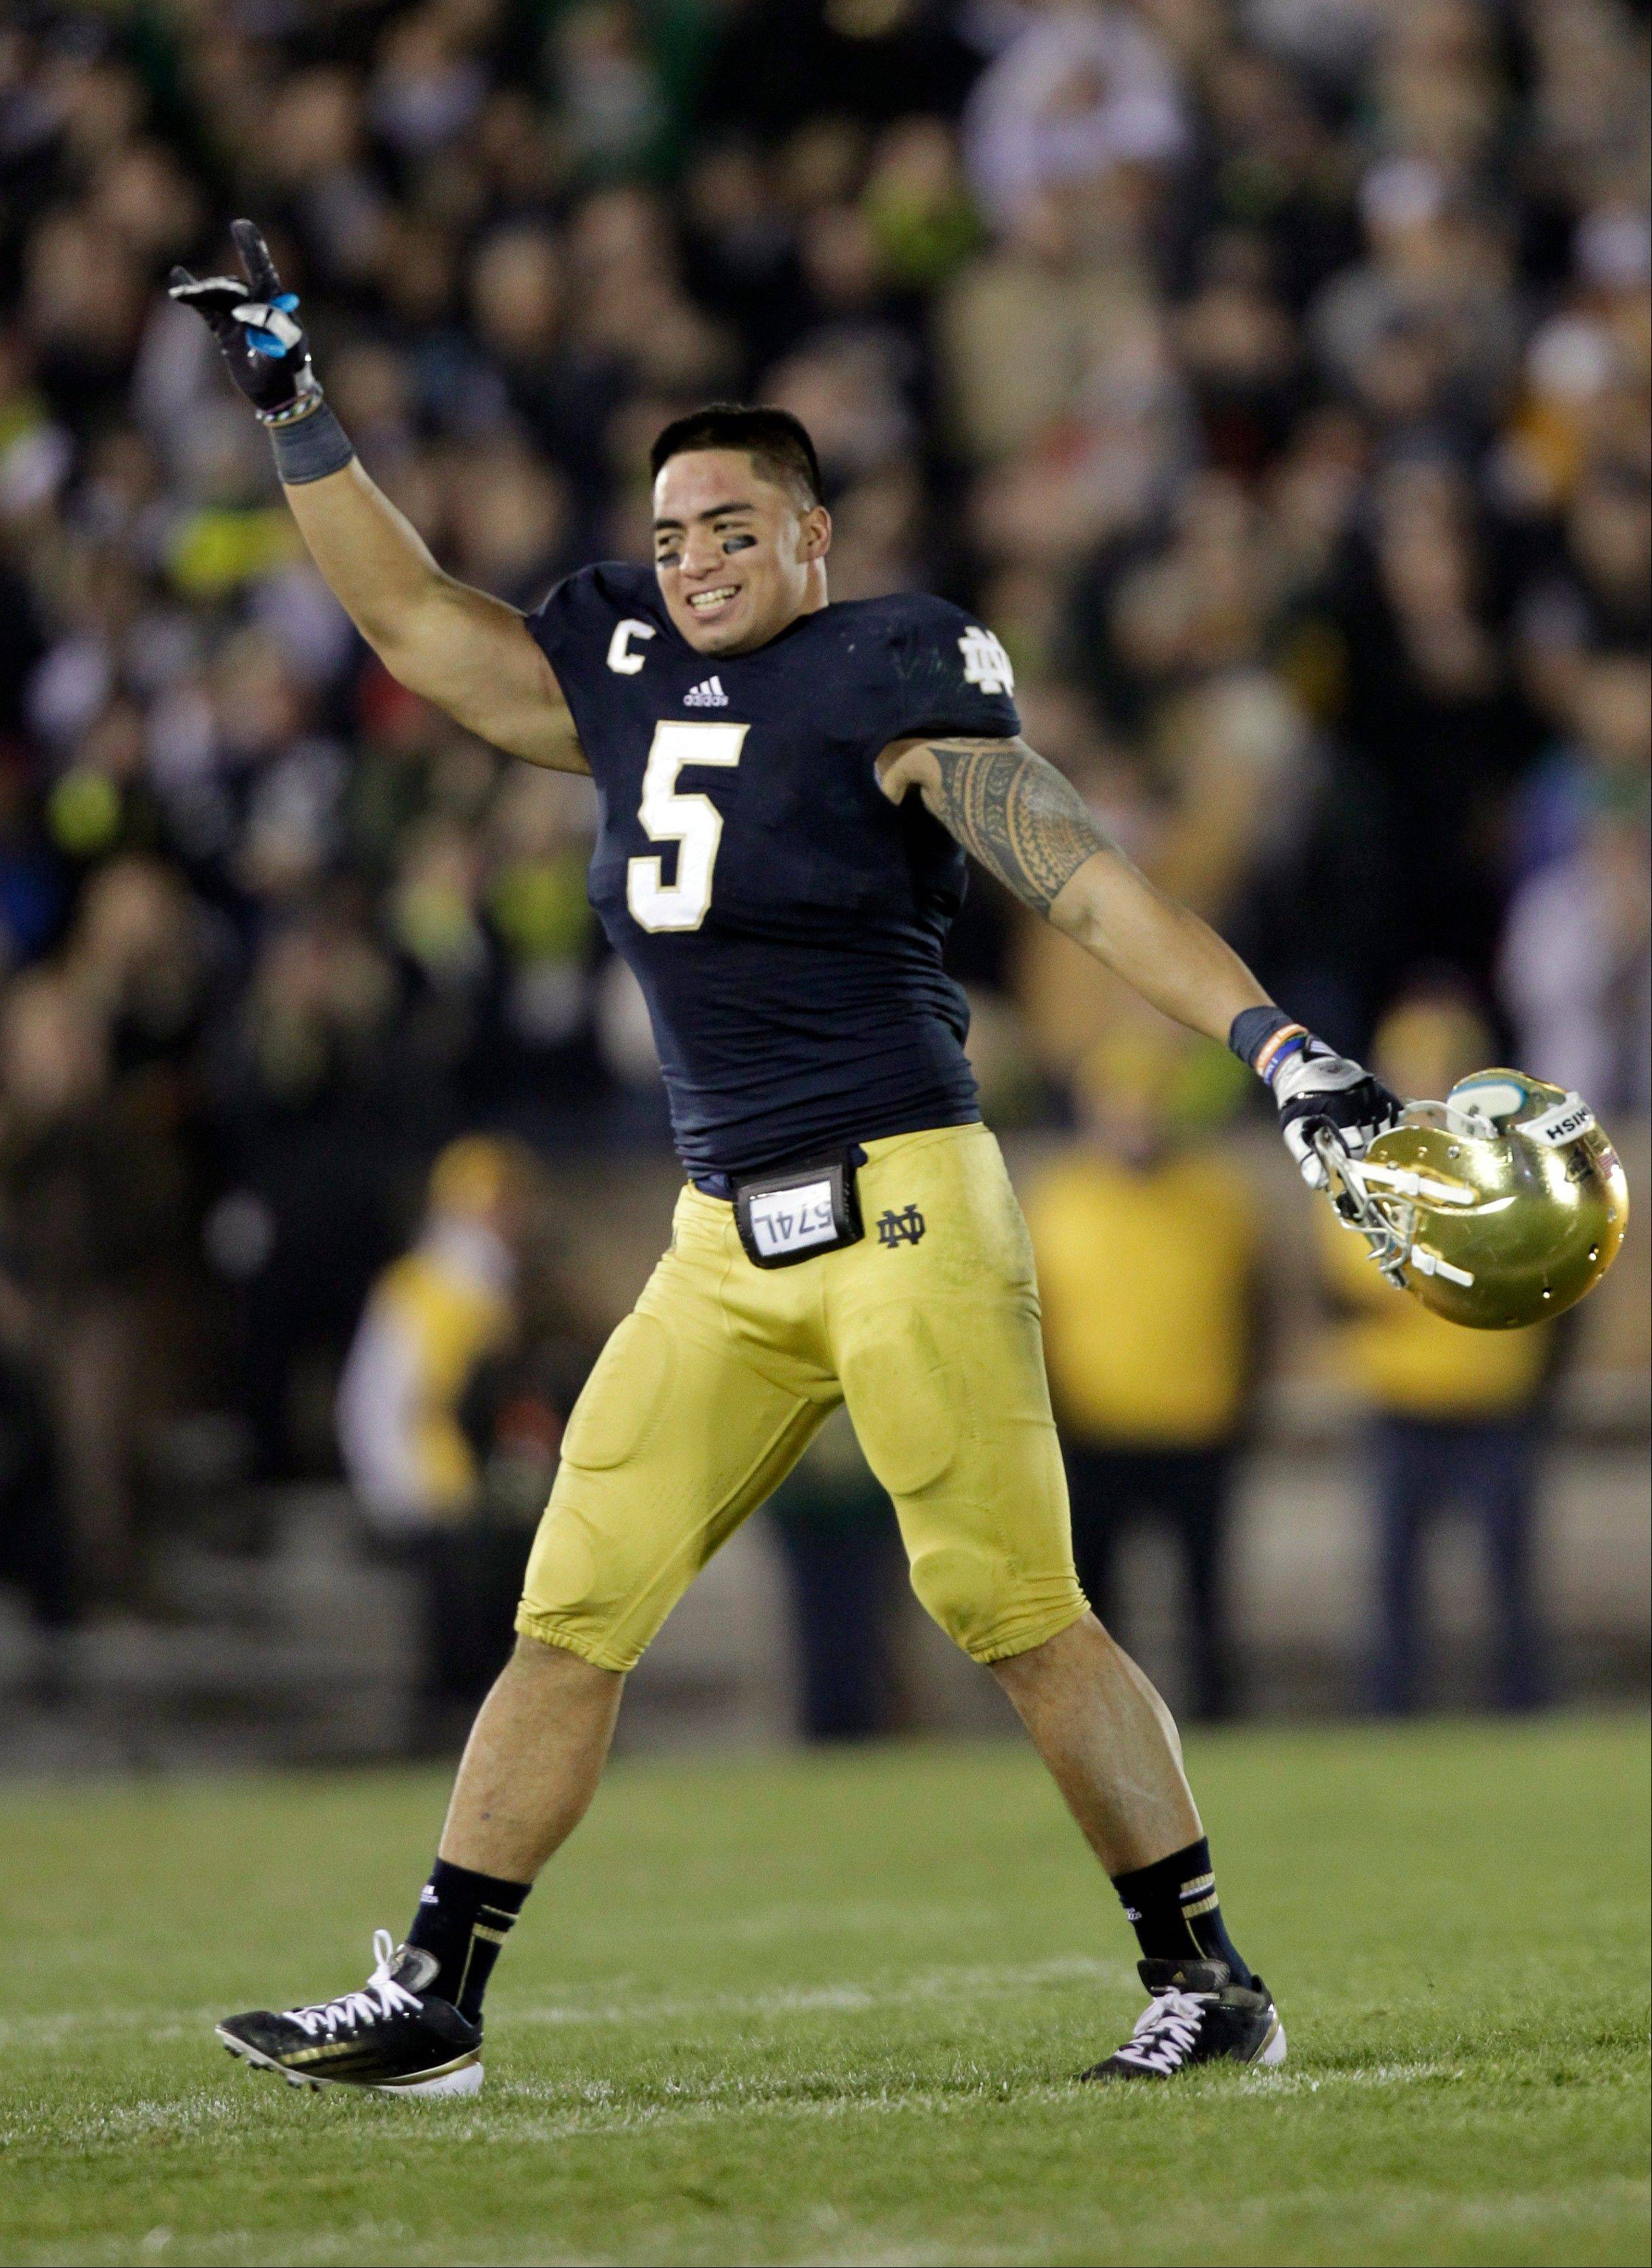 Notre Dame linebacker Manti Te'o acknowledges the applause of fans as he leaves his final home game late in the fourth quarter against Wake Forest game.